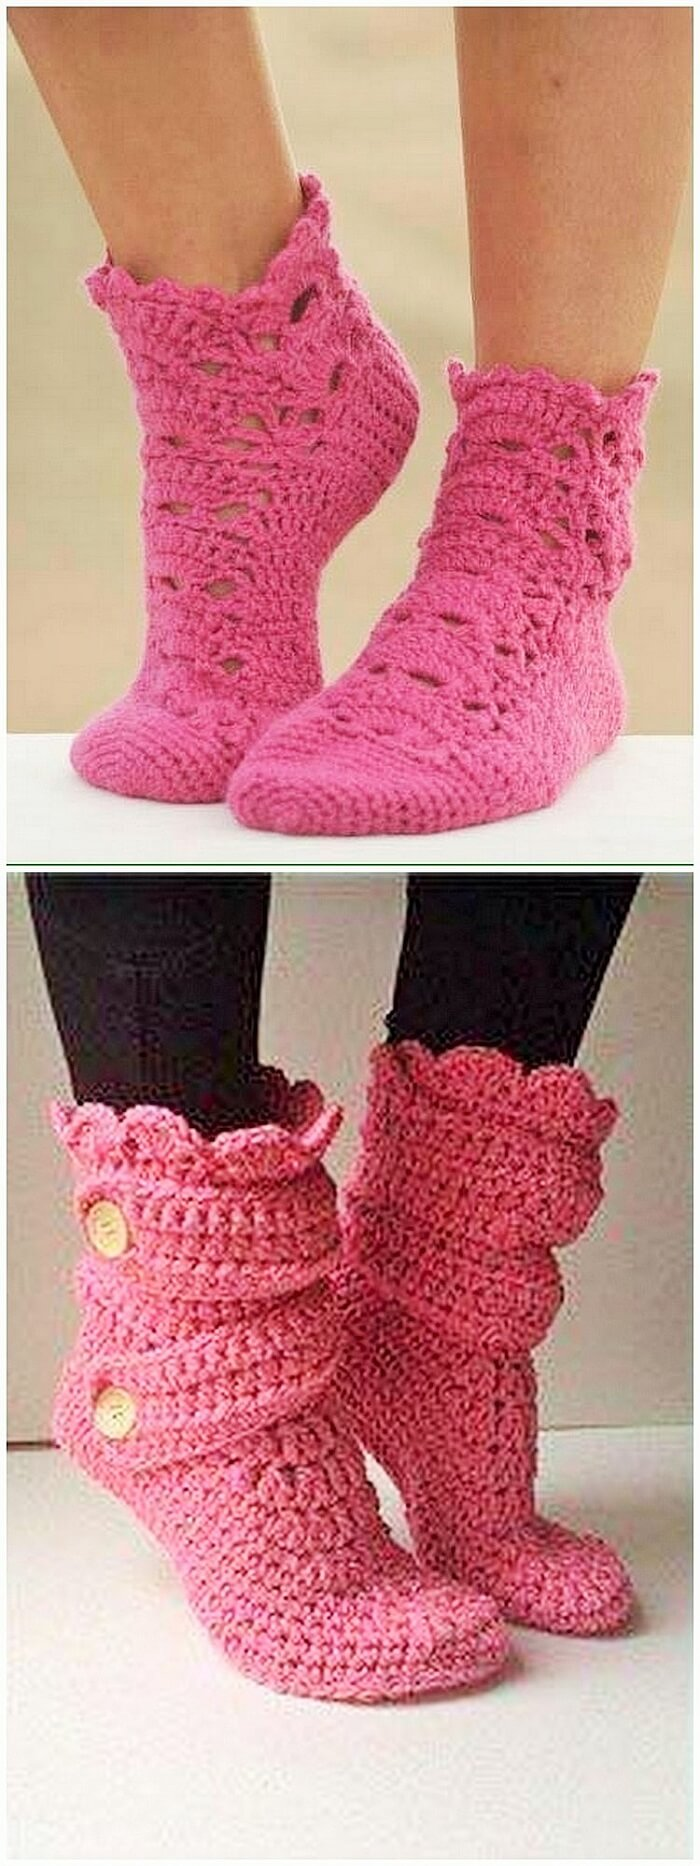 Crochet shoe craft idea